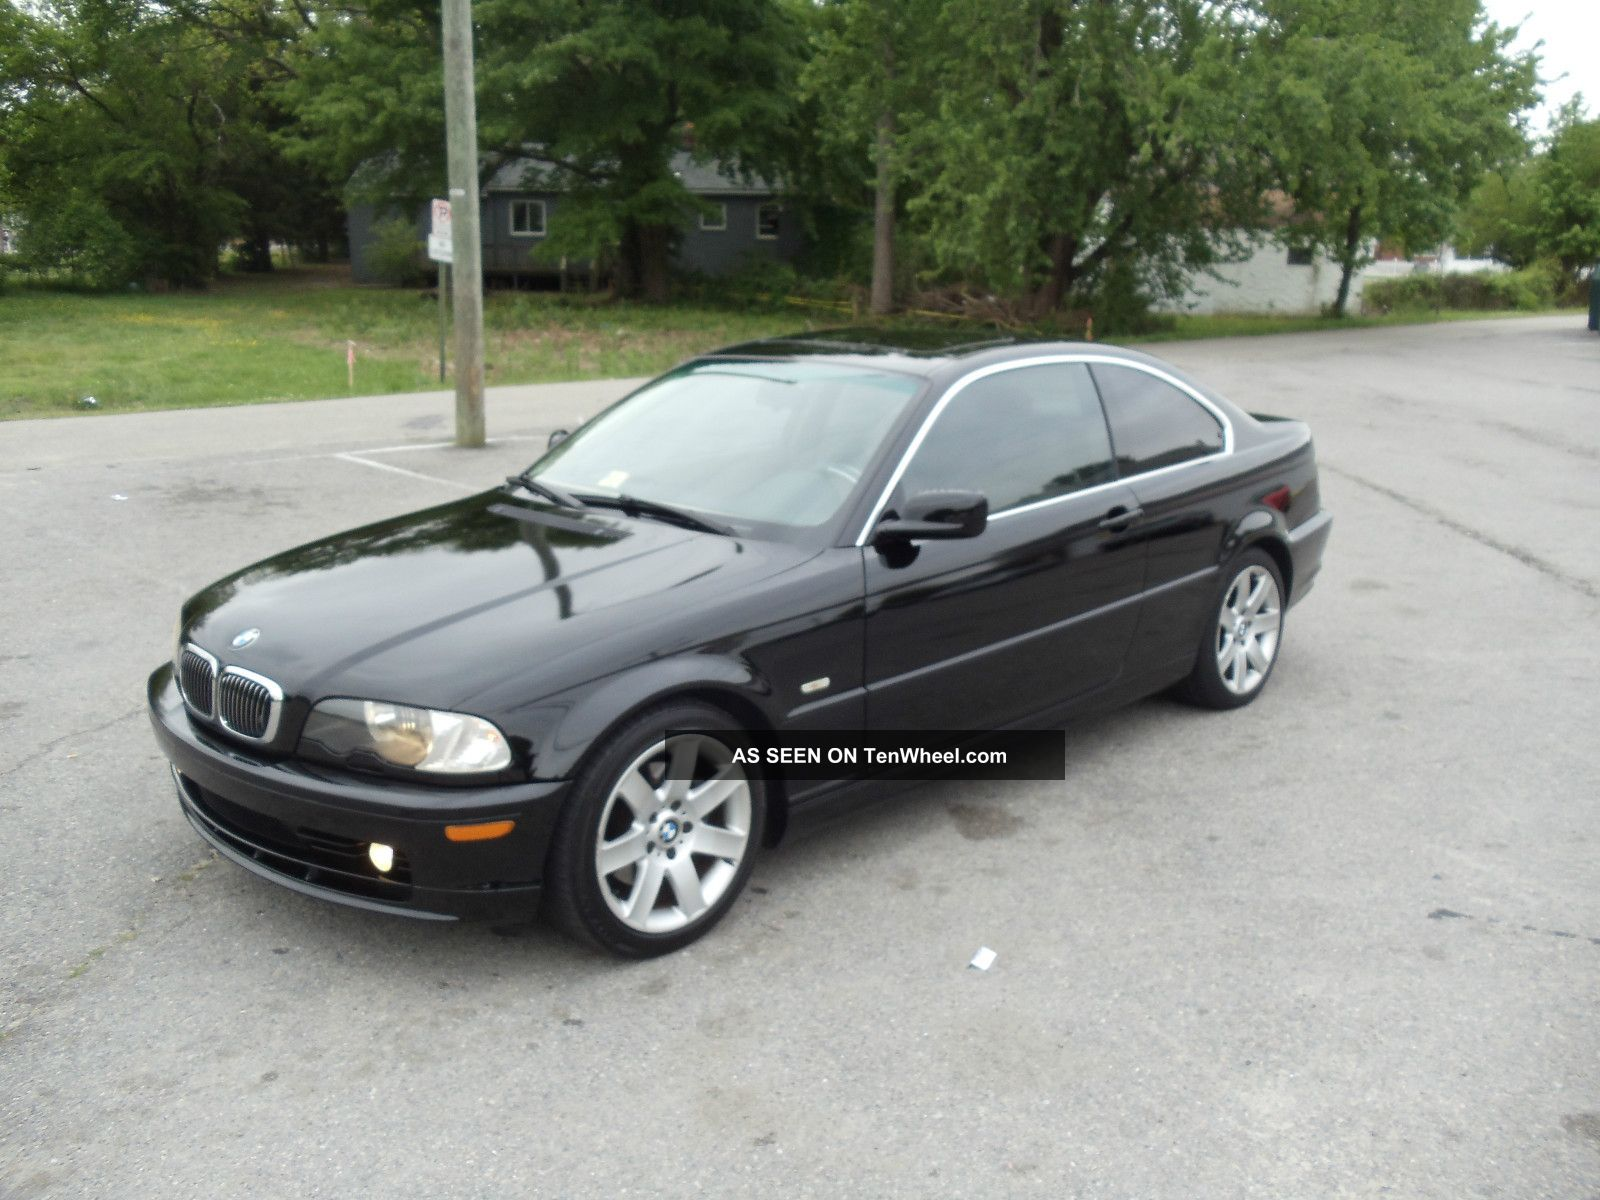 2002 Bmw 325ci 5 Speed Manual Black 2 Door Coupe 3-Series photo